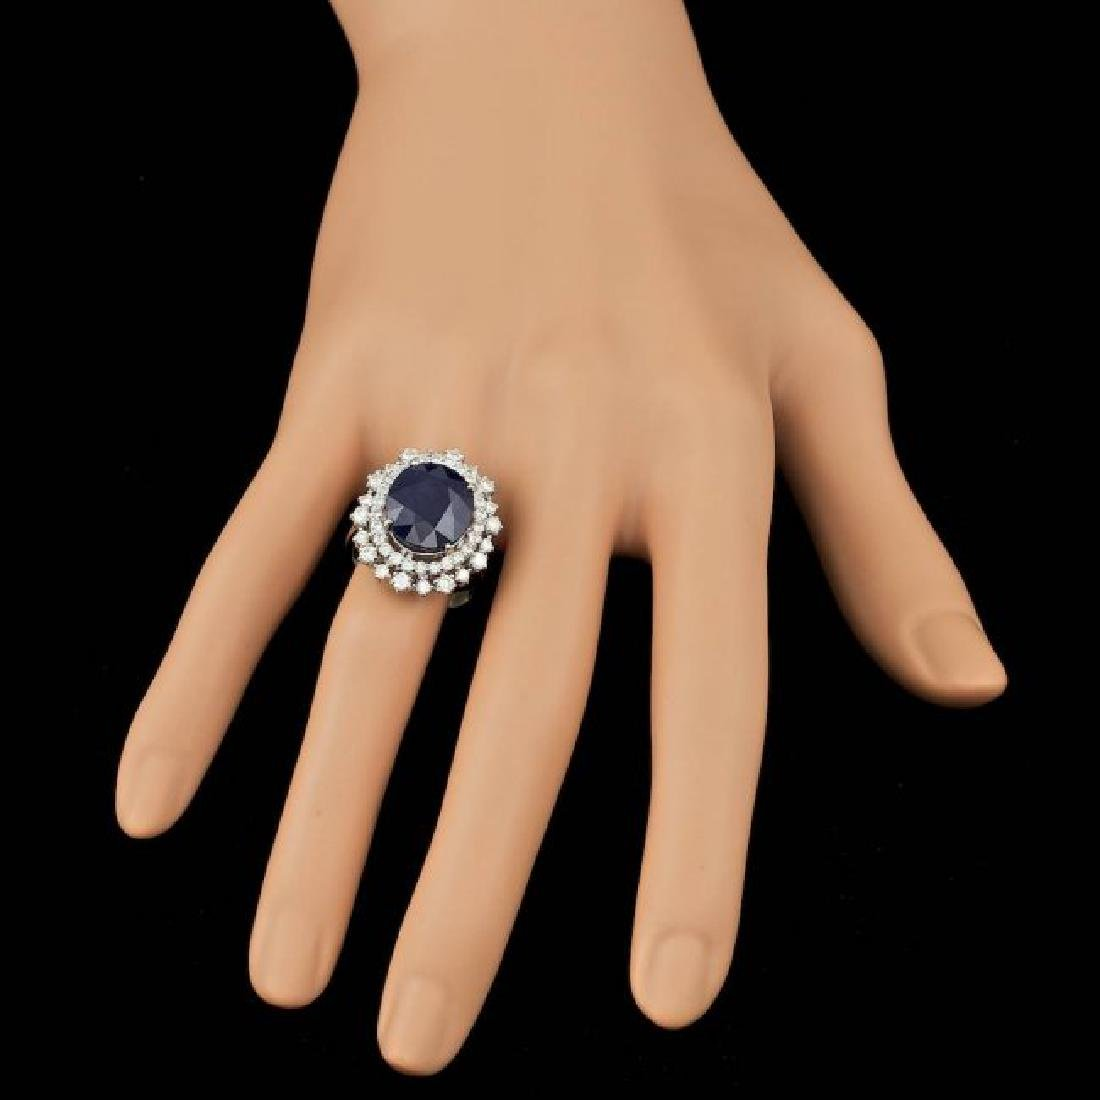 14k Gold 8.50ct Sapphire 1.50ct Diamond Ring - 3